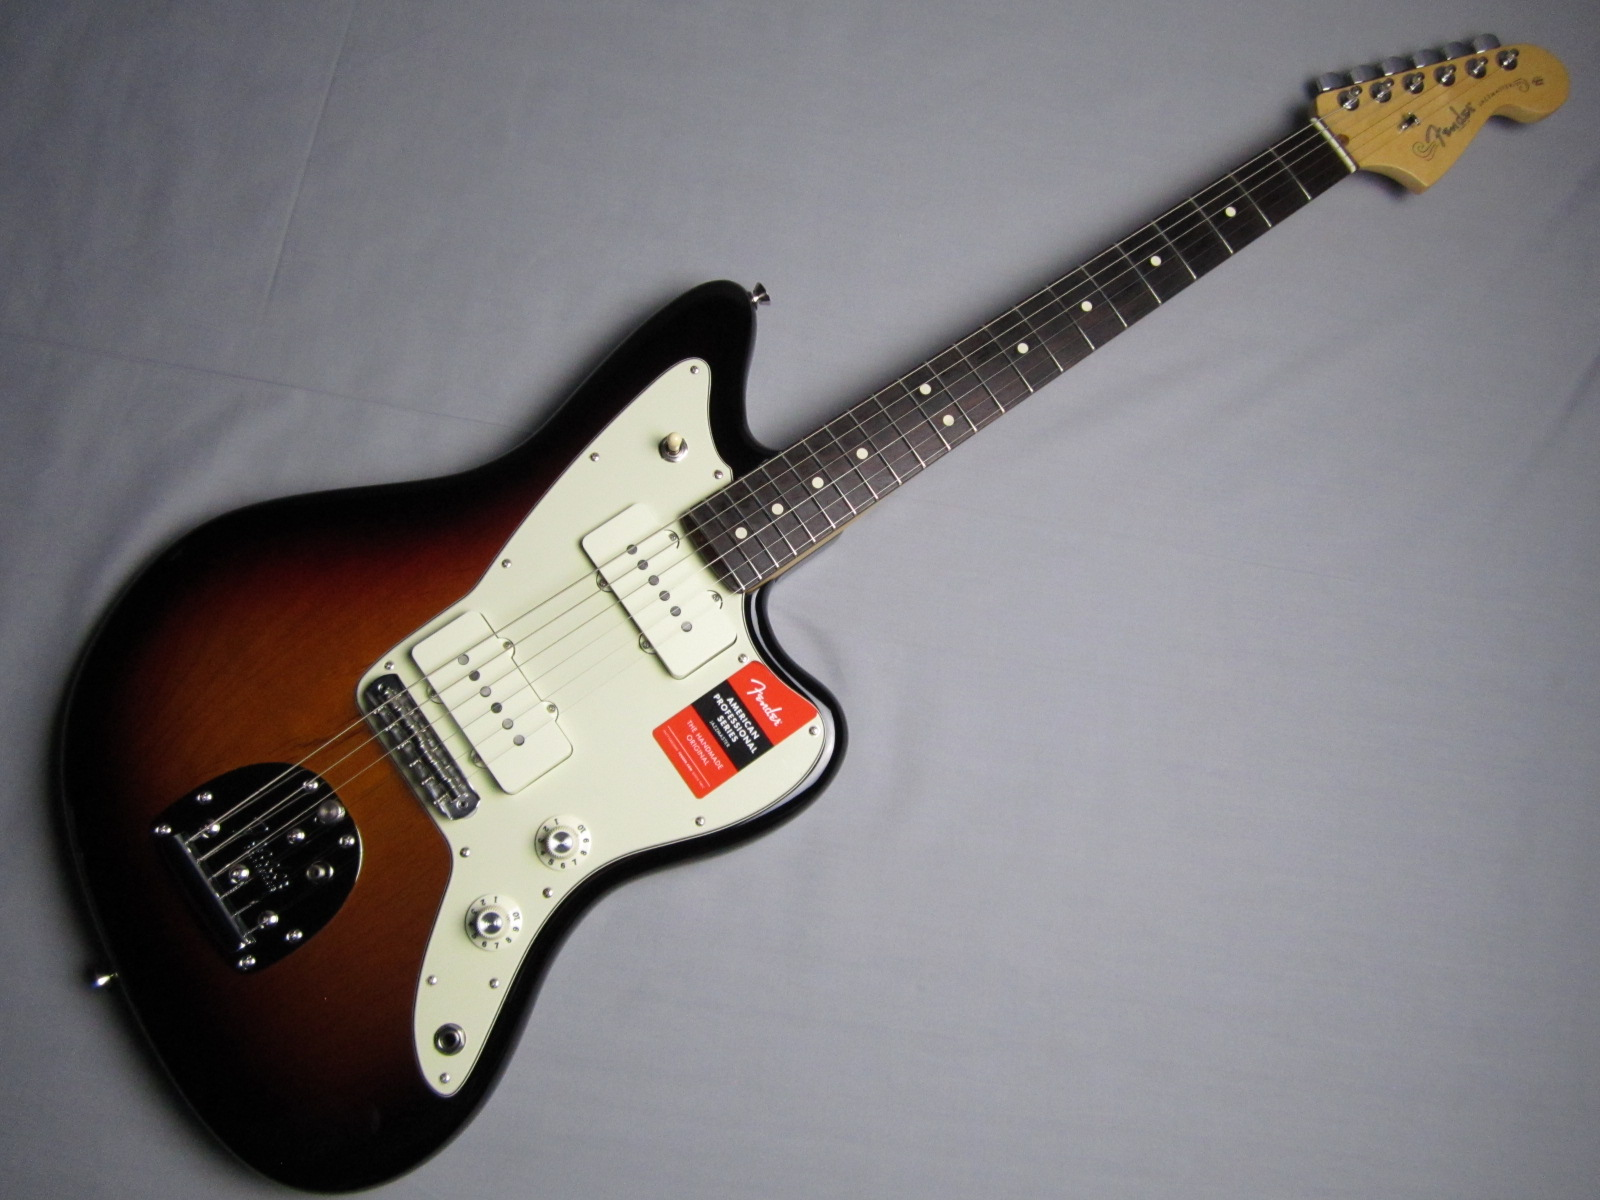 American Pro Jazzmaster Rosewood Fingerboardのボディトップ-アップ画像